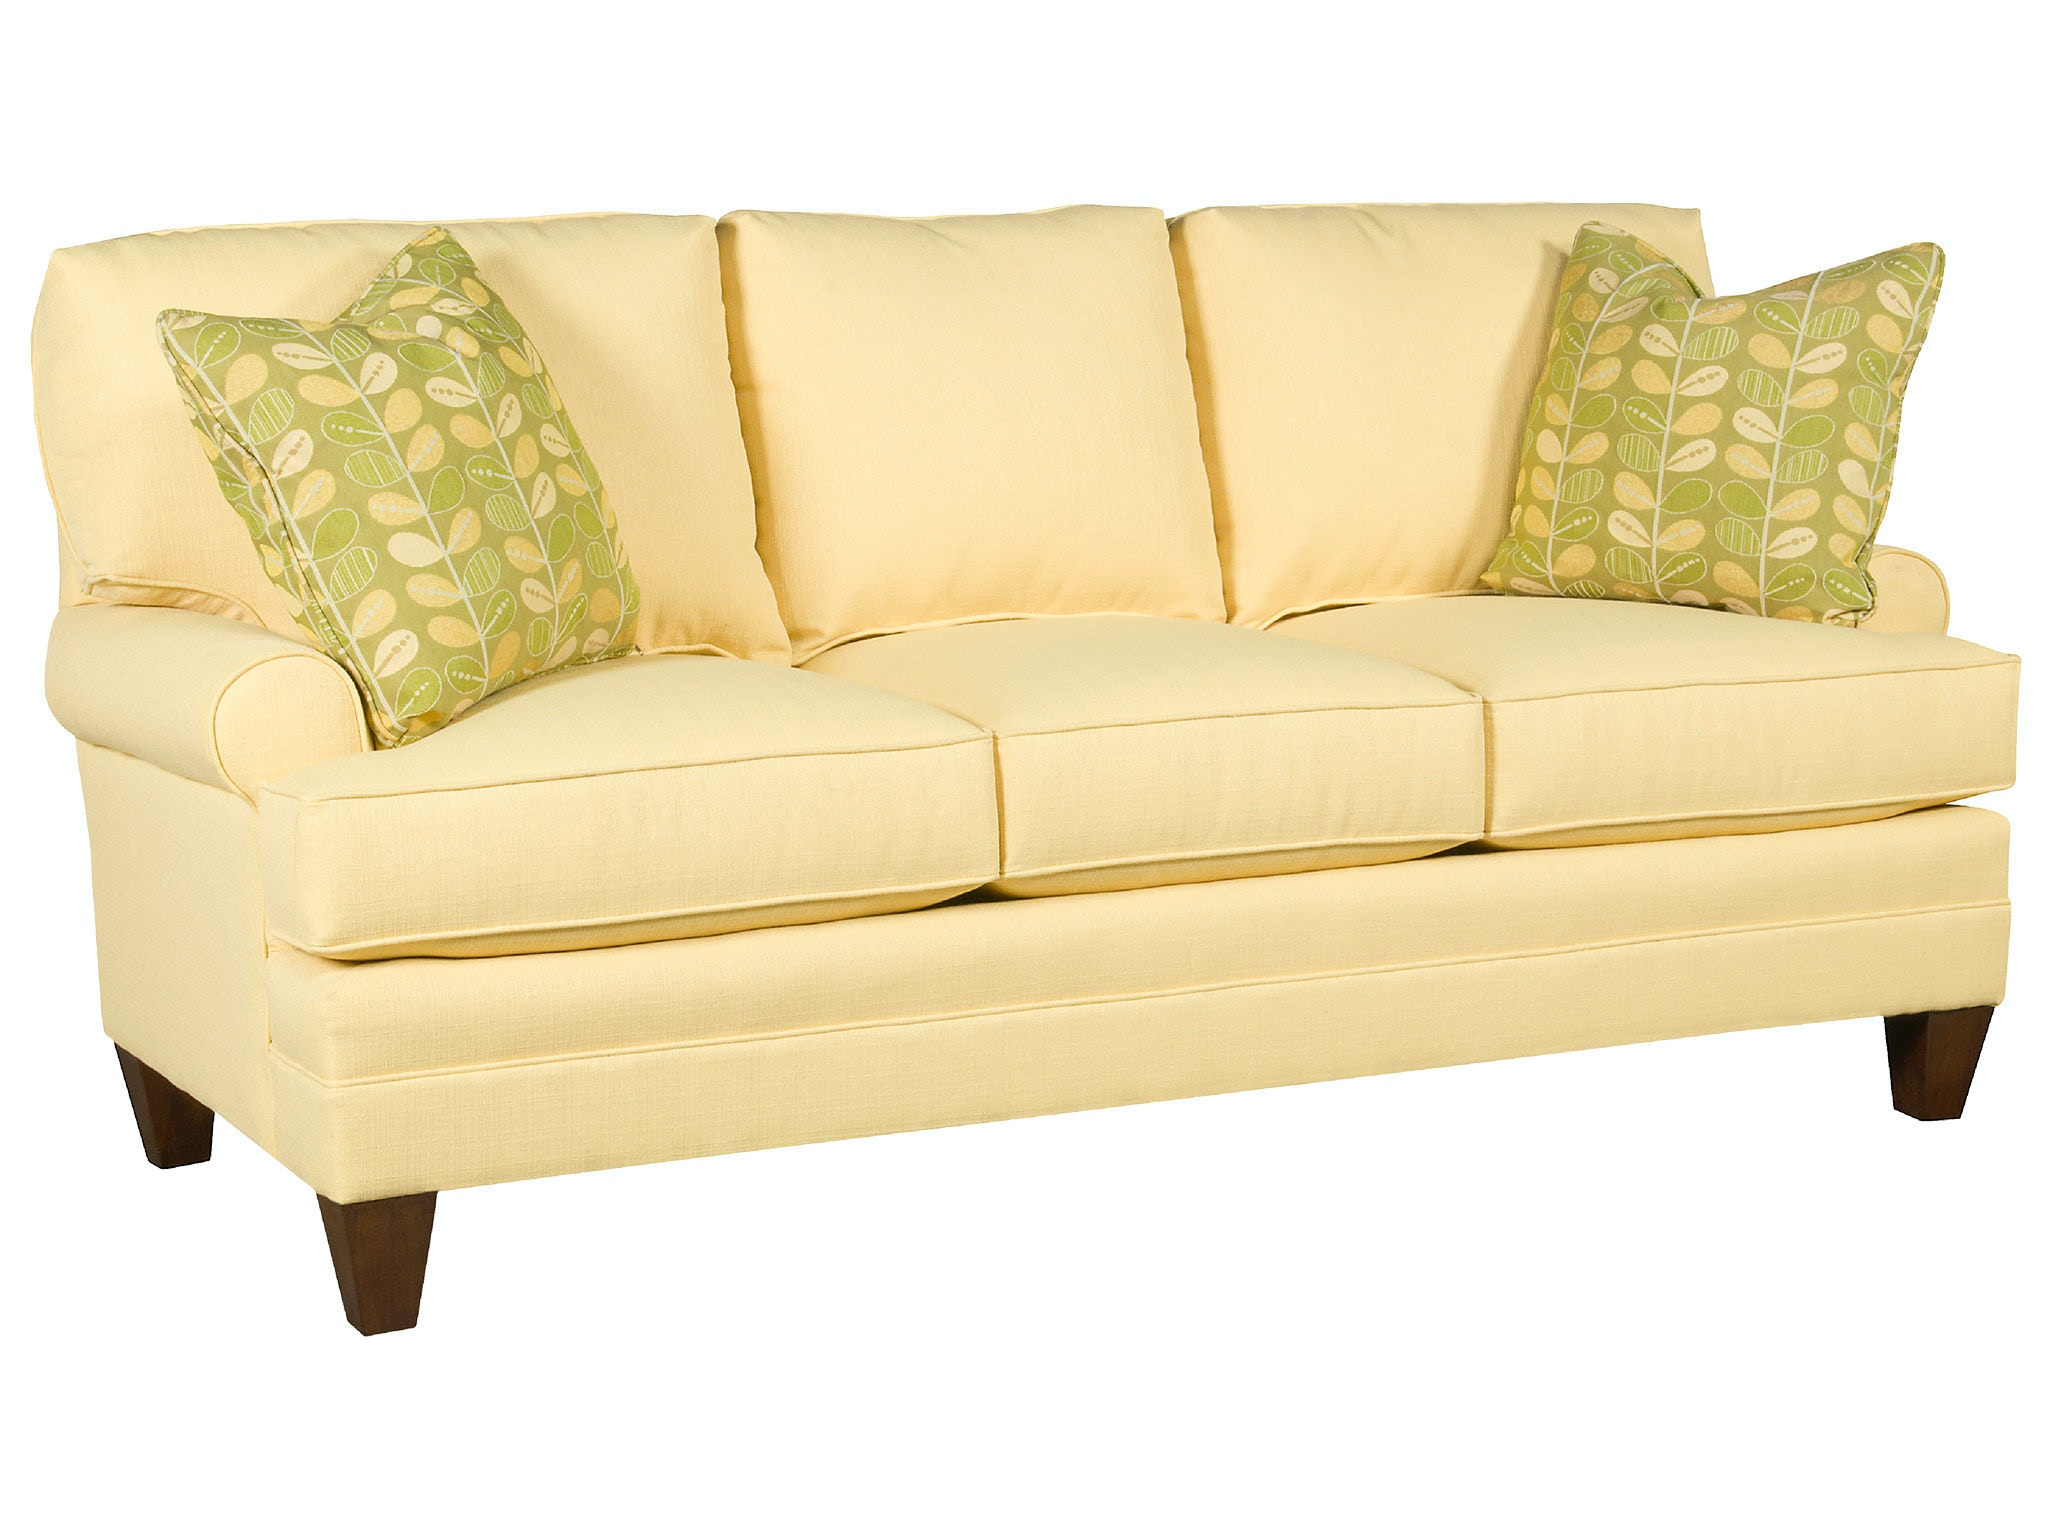 King Hickory Kelly Sofa 1200